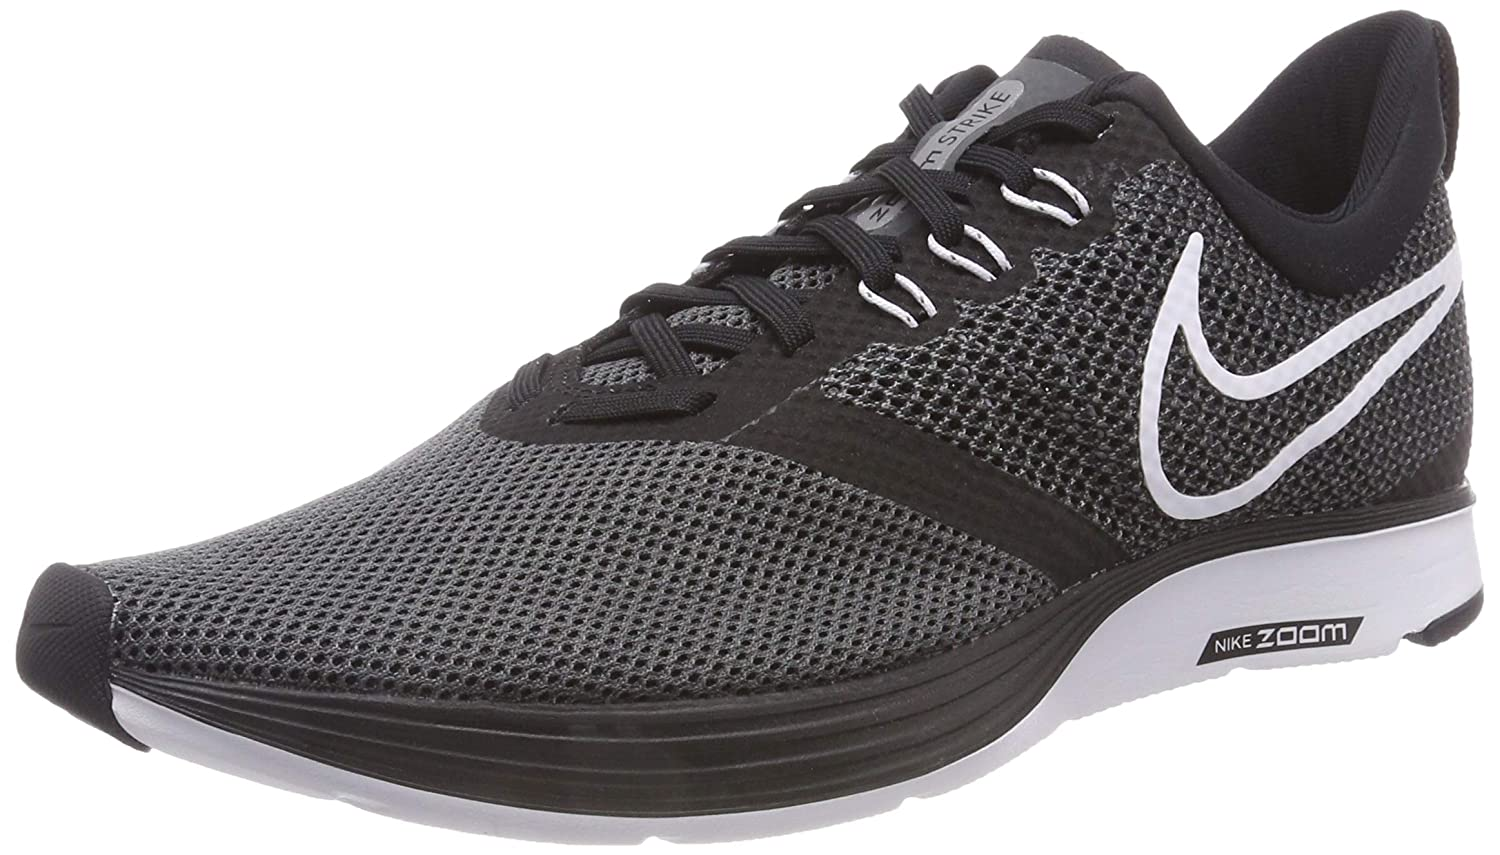 huge discount 811c5 a2cd4 Amazon.com  Nike Men s Zoom Strike Running Shoes  Nike  Shoes